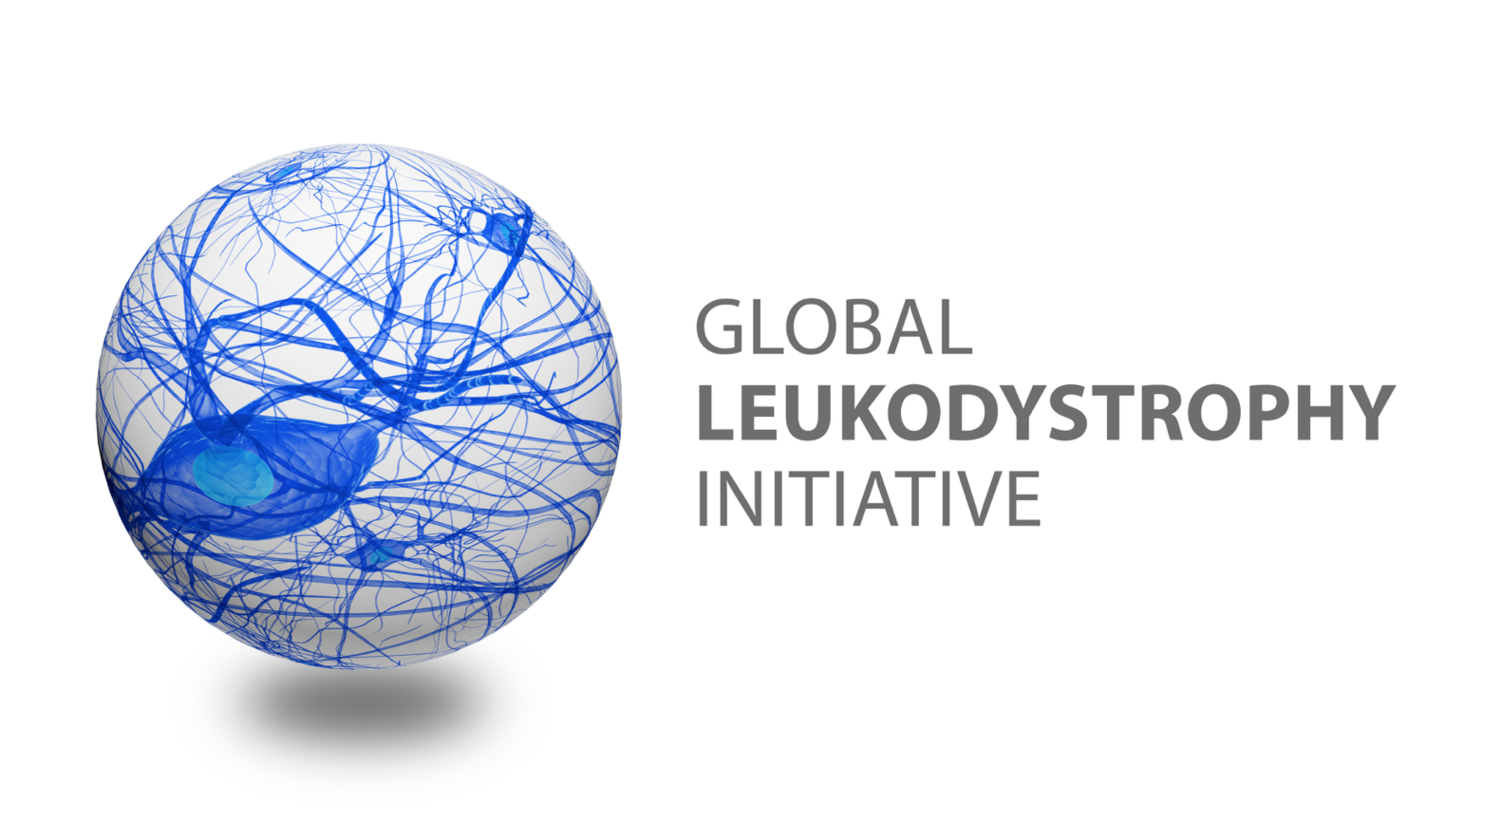 OUR TEAM — The Global Leukodystrophy Initiative